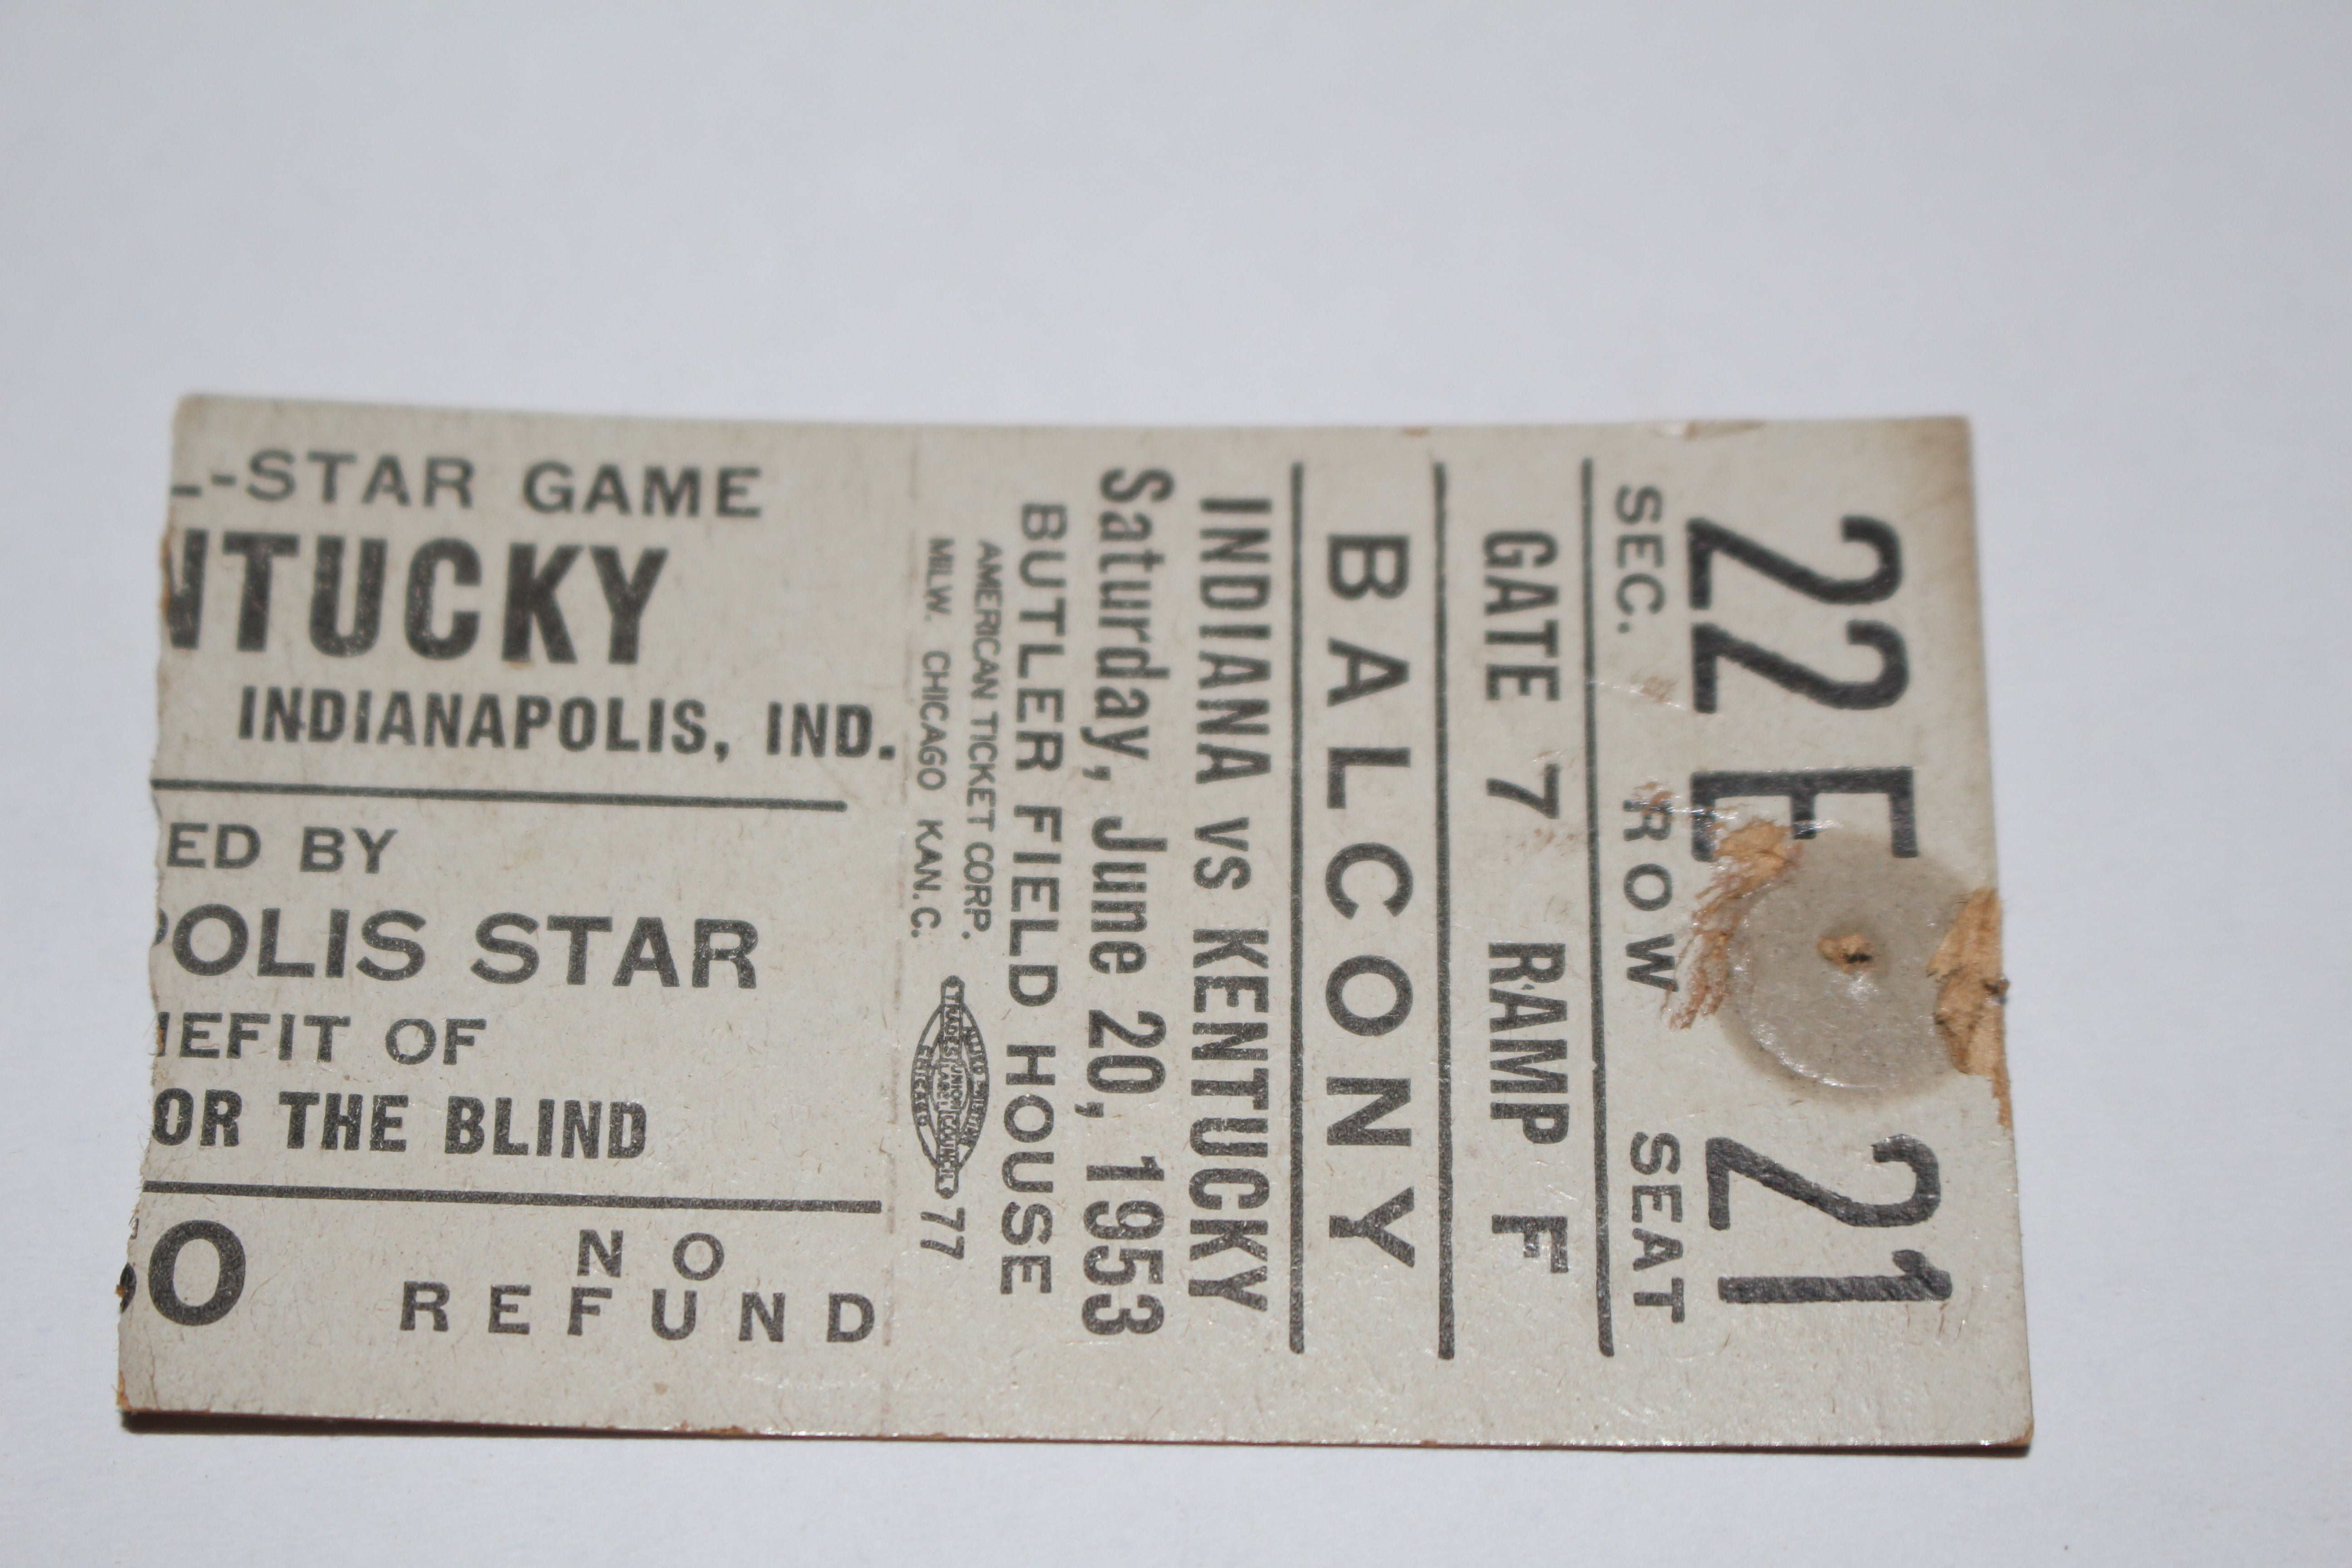 1953 Indiana vs Kentucky High School Basketball All Star Game Ticket Stub - Vintage Indy Sports